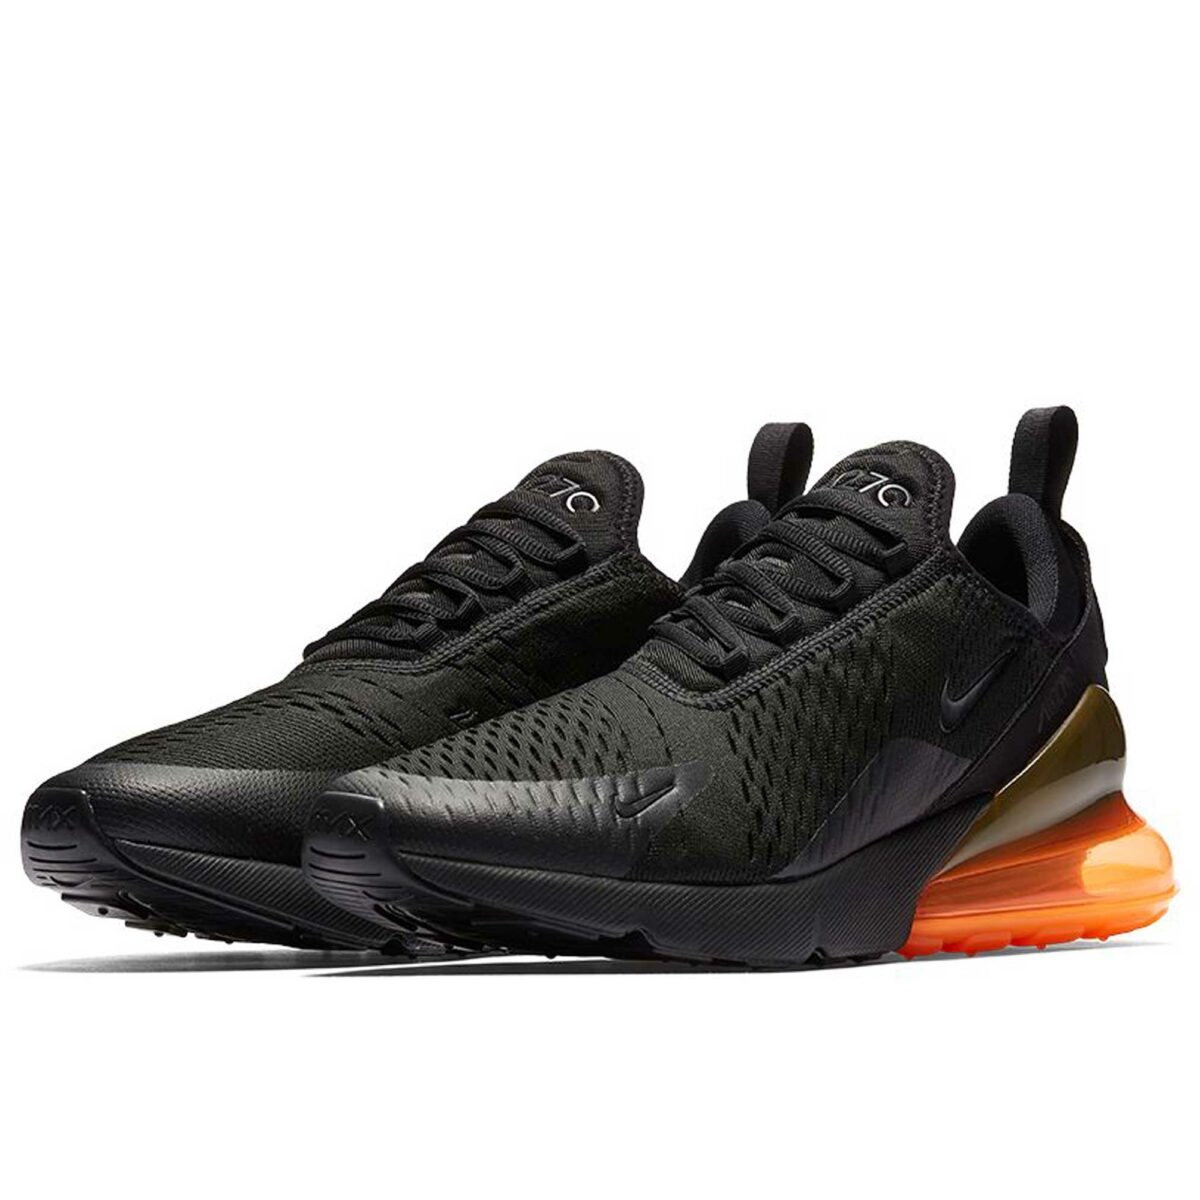 nike air max 270 black total orange hell AH8050_008 купить